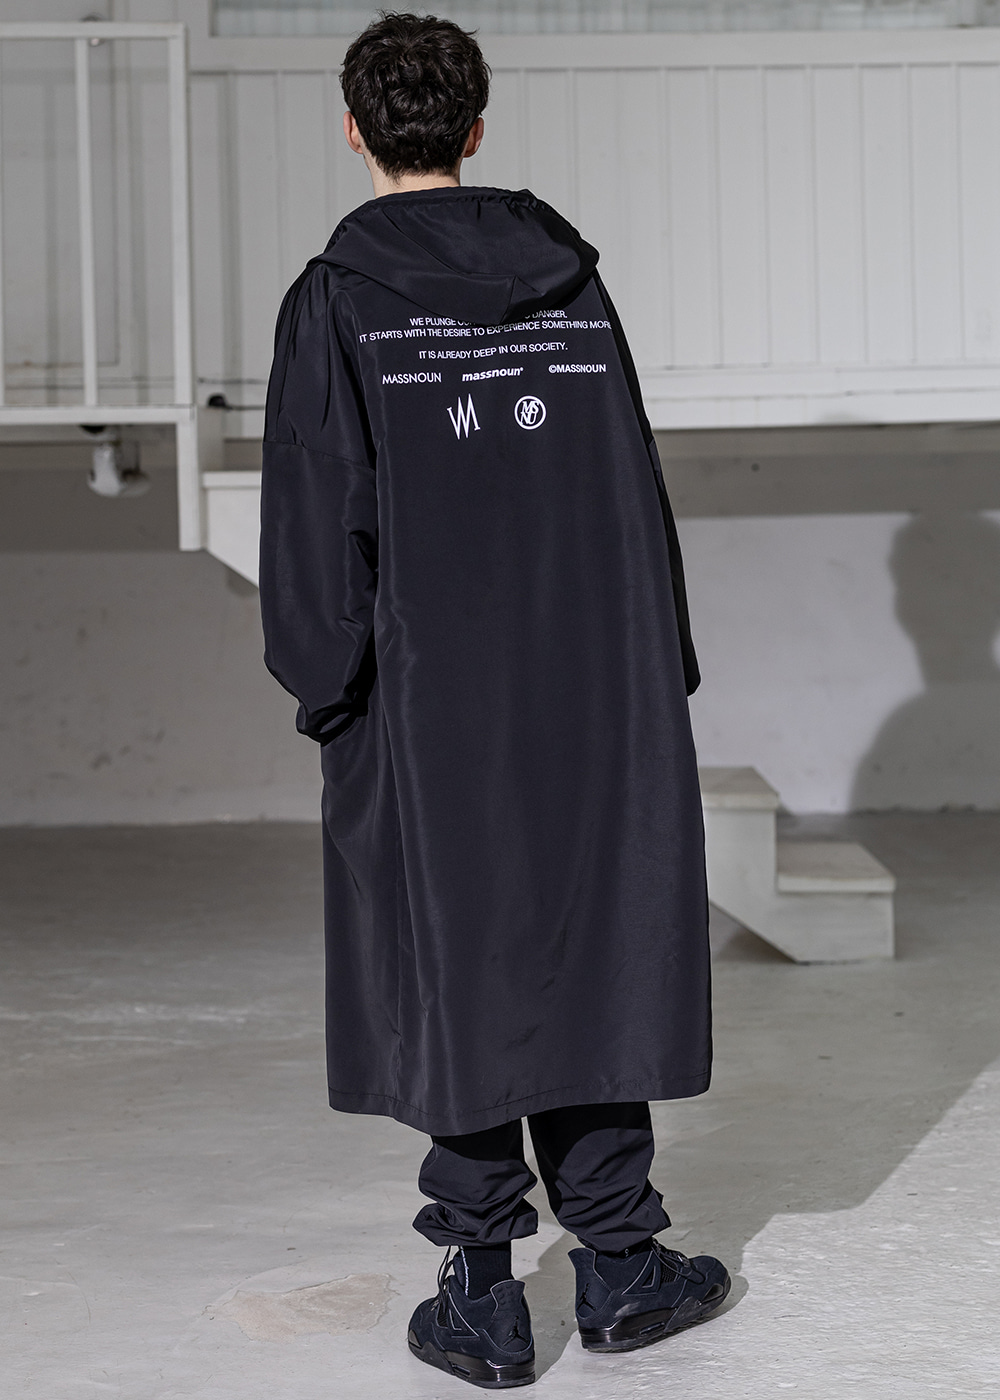 CAMPAIGN LONG RAIN COAT MSZCT002-BK